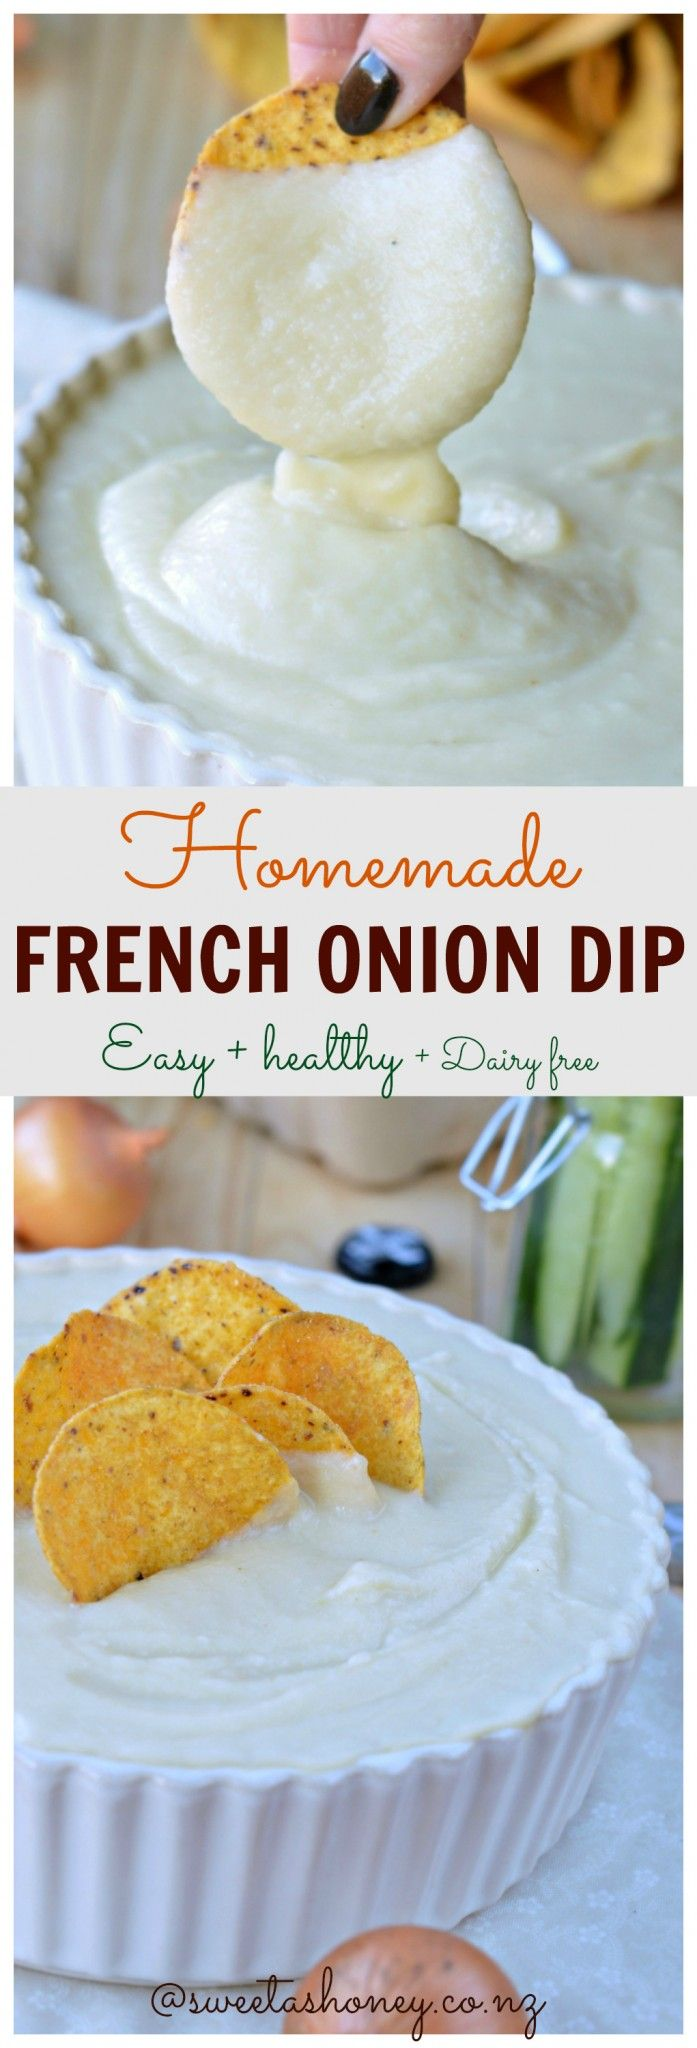 Homemade Low calorie French Onion Dip super creamy and dairy free!!!! Check out the magic ingredients in this recipe I am vegan too.